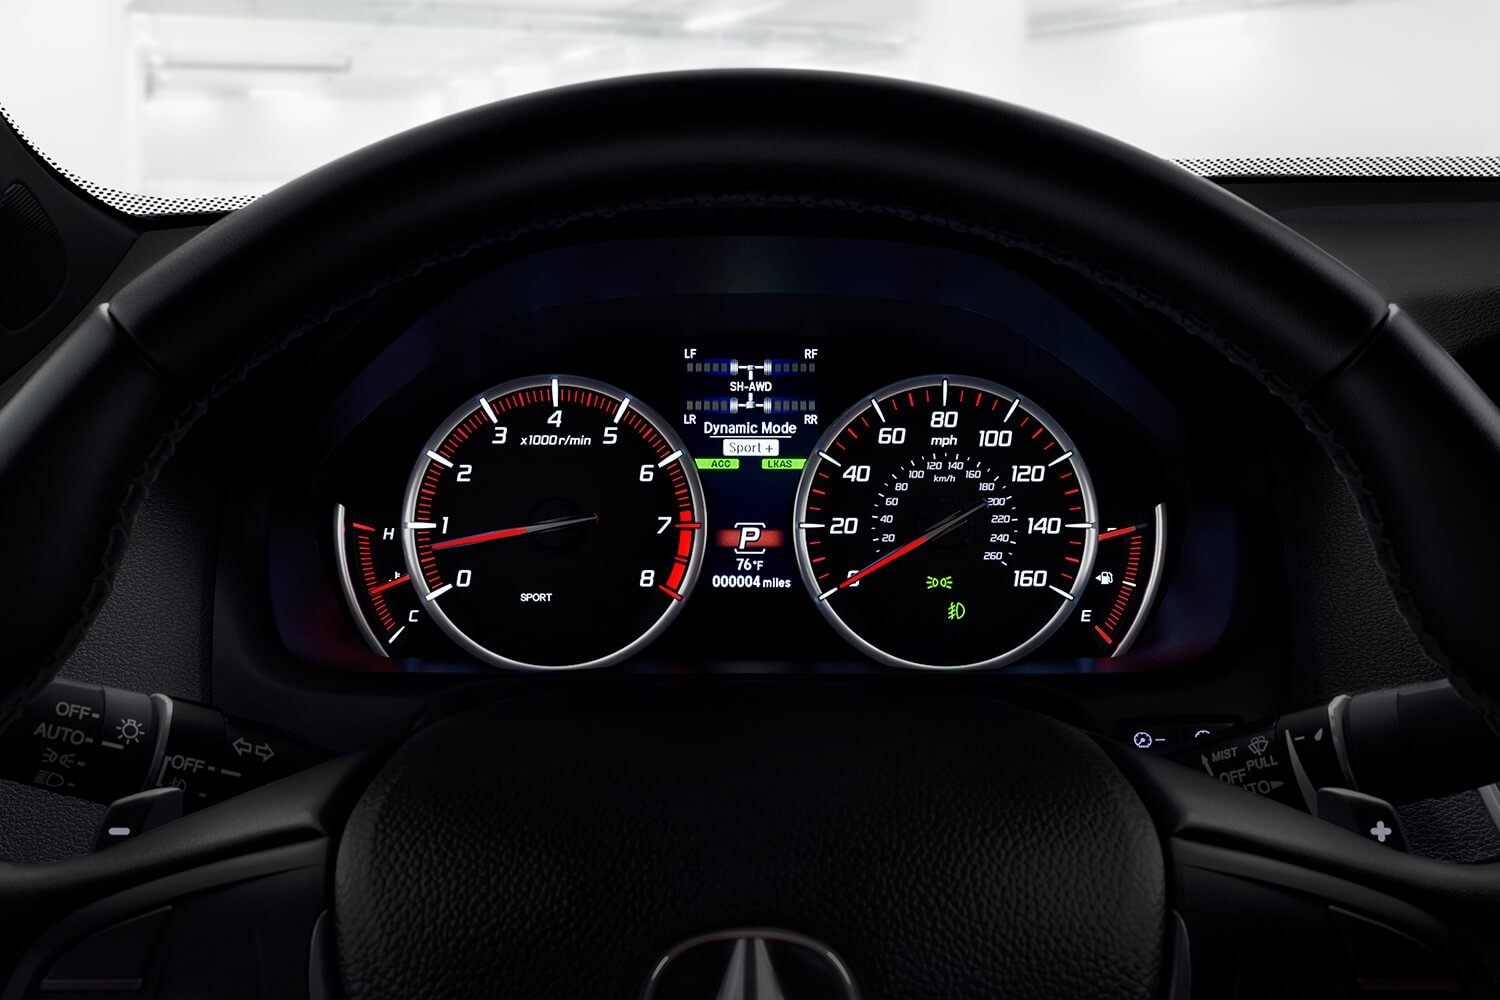 2018 Acura TLX Interior Gauges